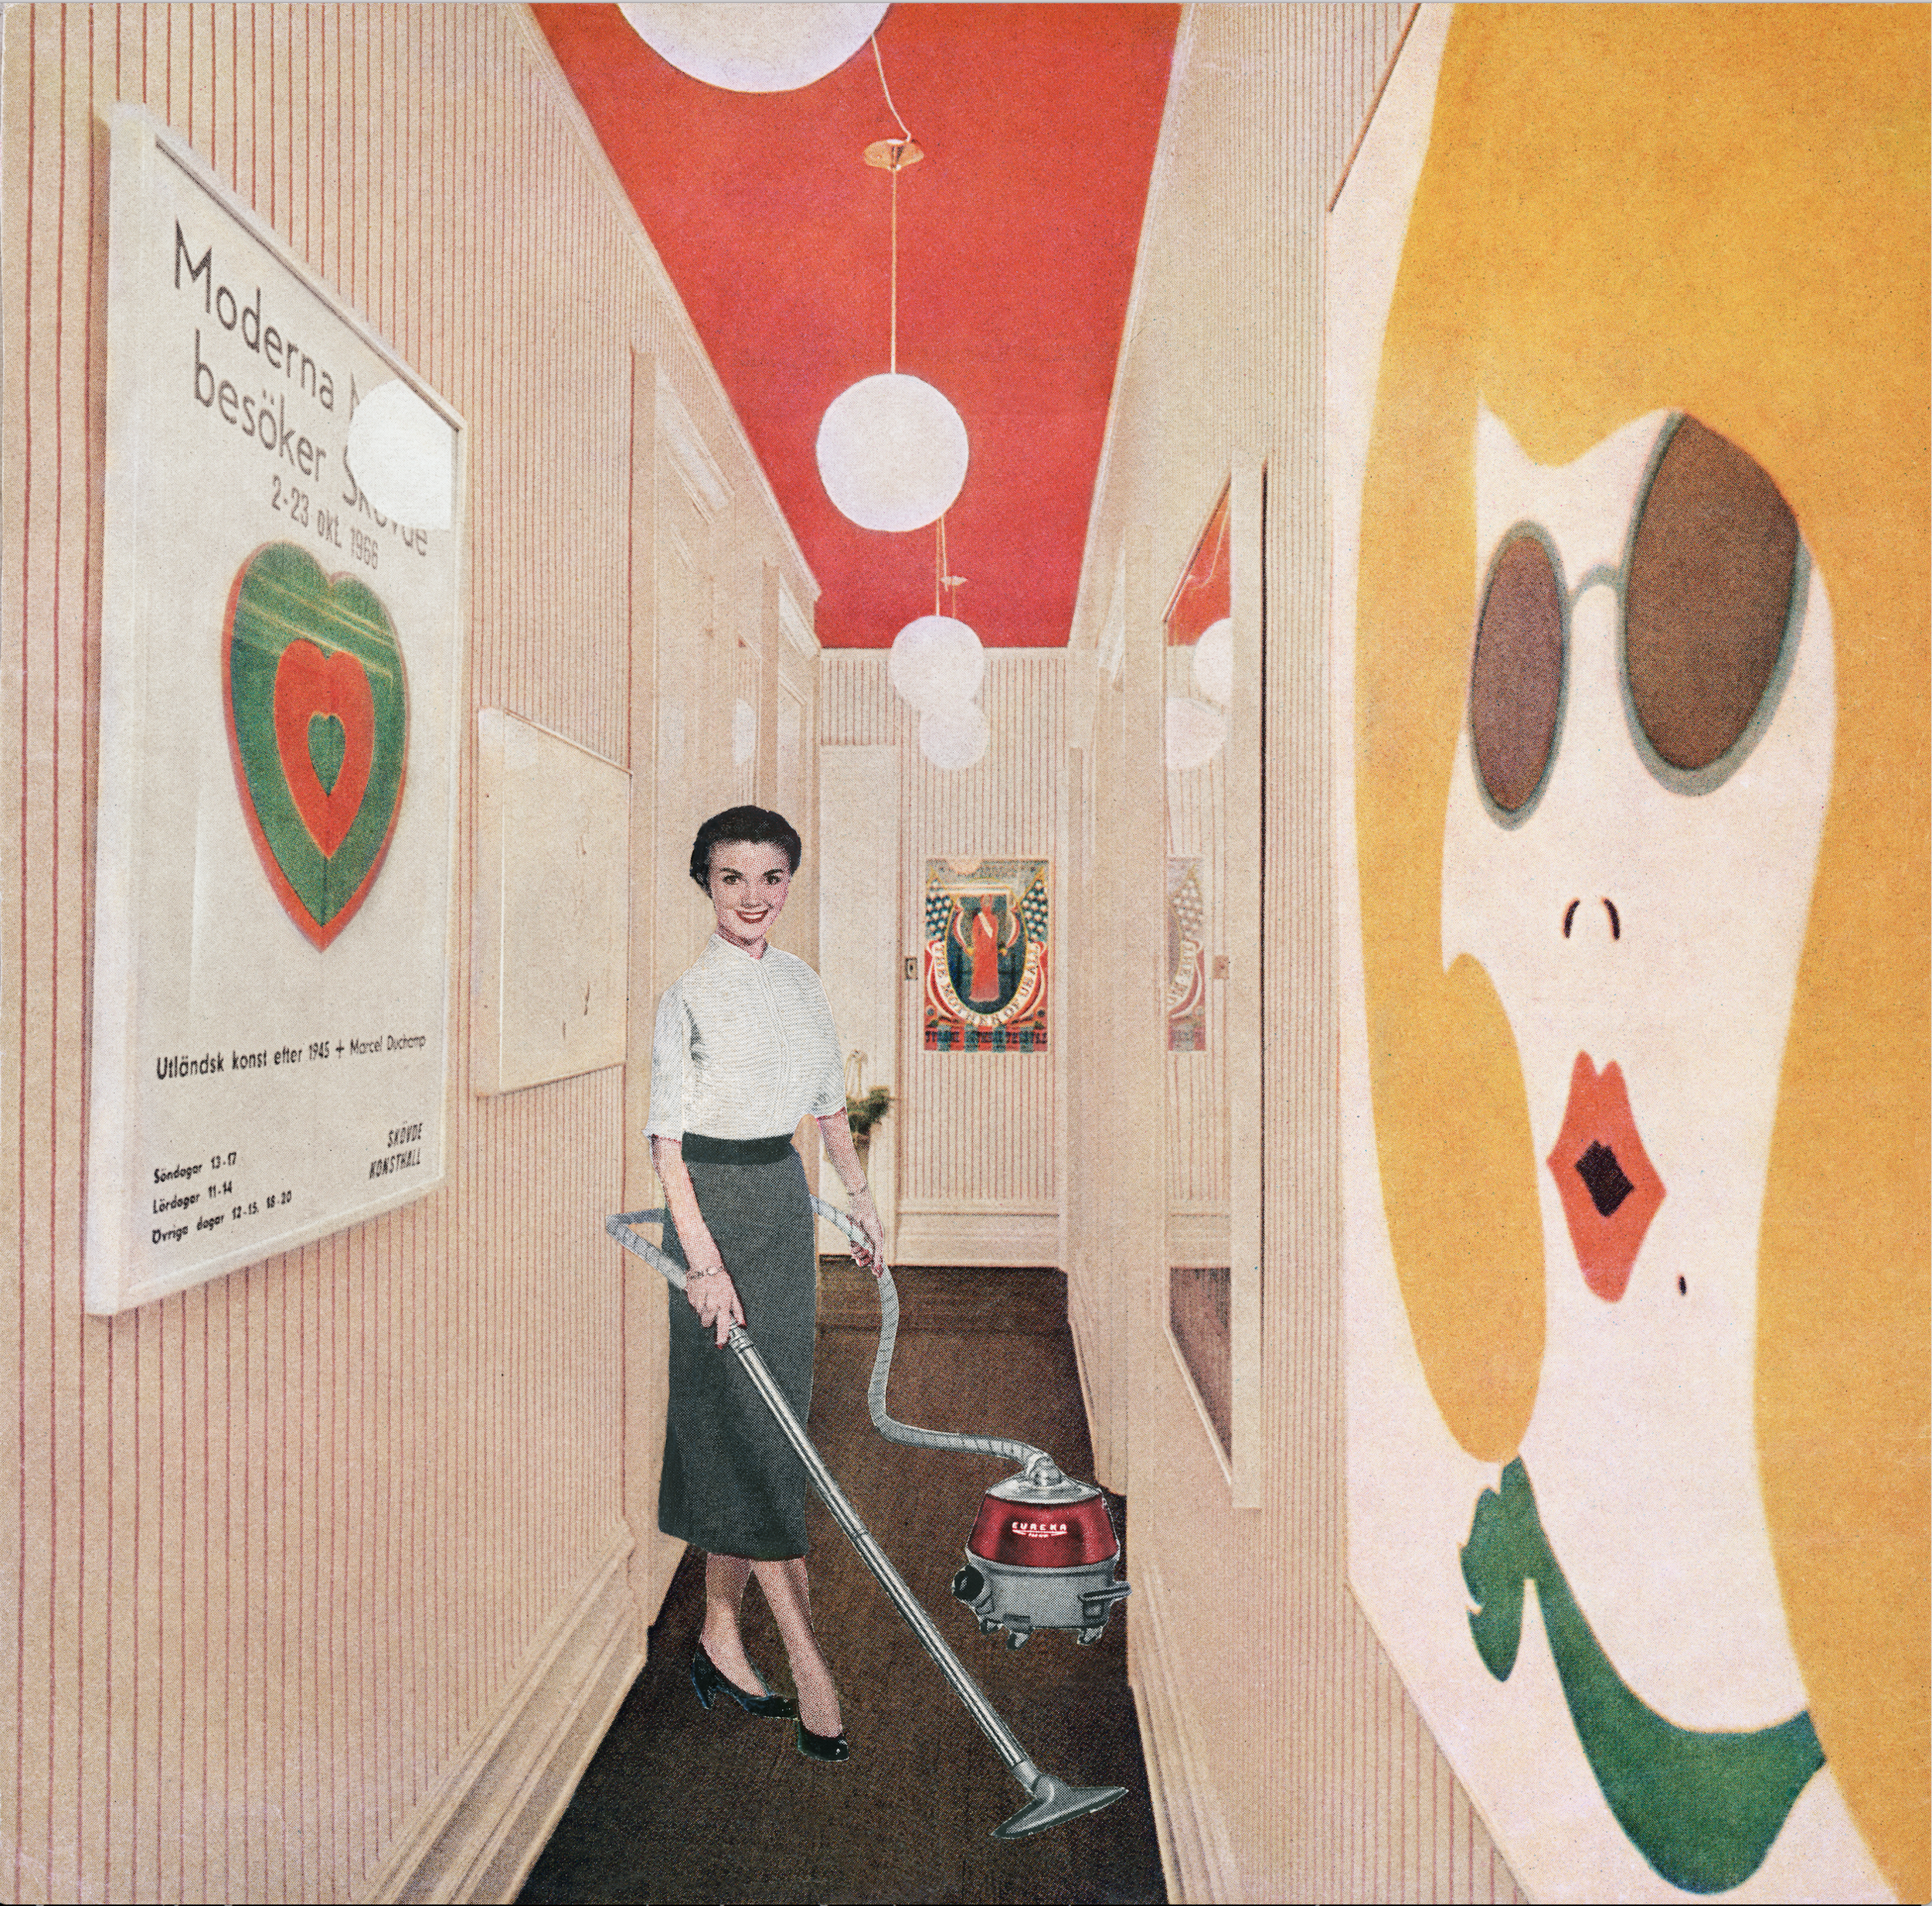 Martha Rosler, Vacuuming Pop Art, or Woman with Vacuum, from the series Body Beautiful, or Beauty Knows No Pain,  c. 1966–72, photomontage Artwork © Martha Rosler; image courtesy of the artist and Mitchell-Innes & Nash, New York